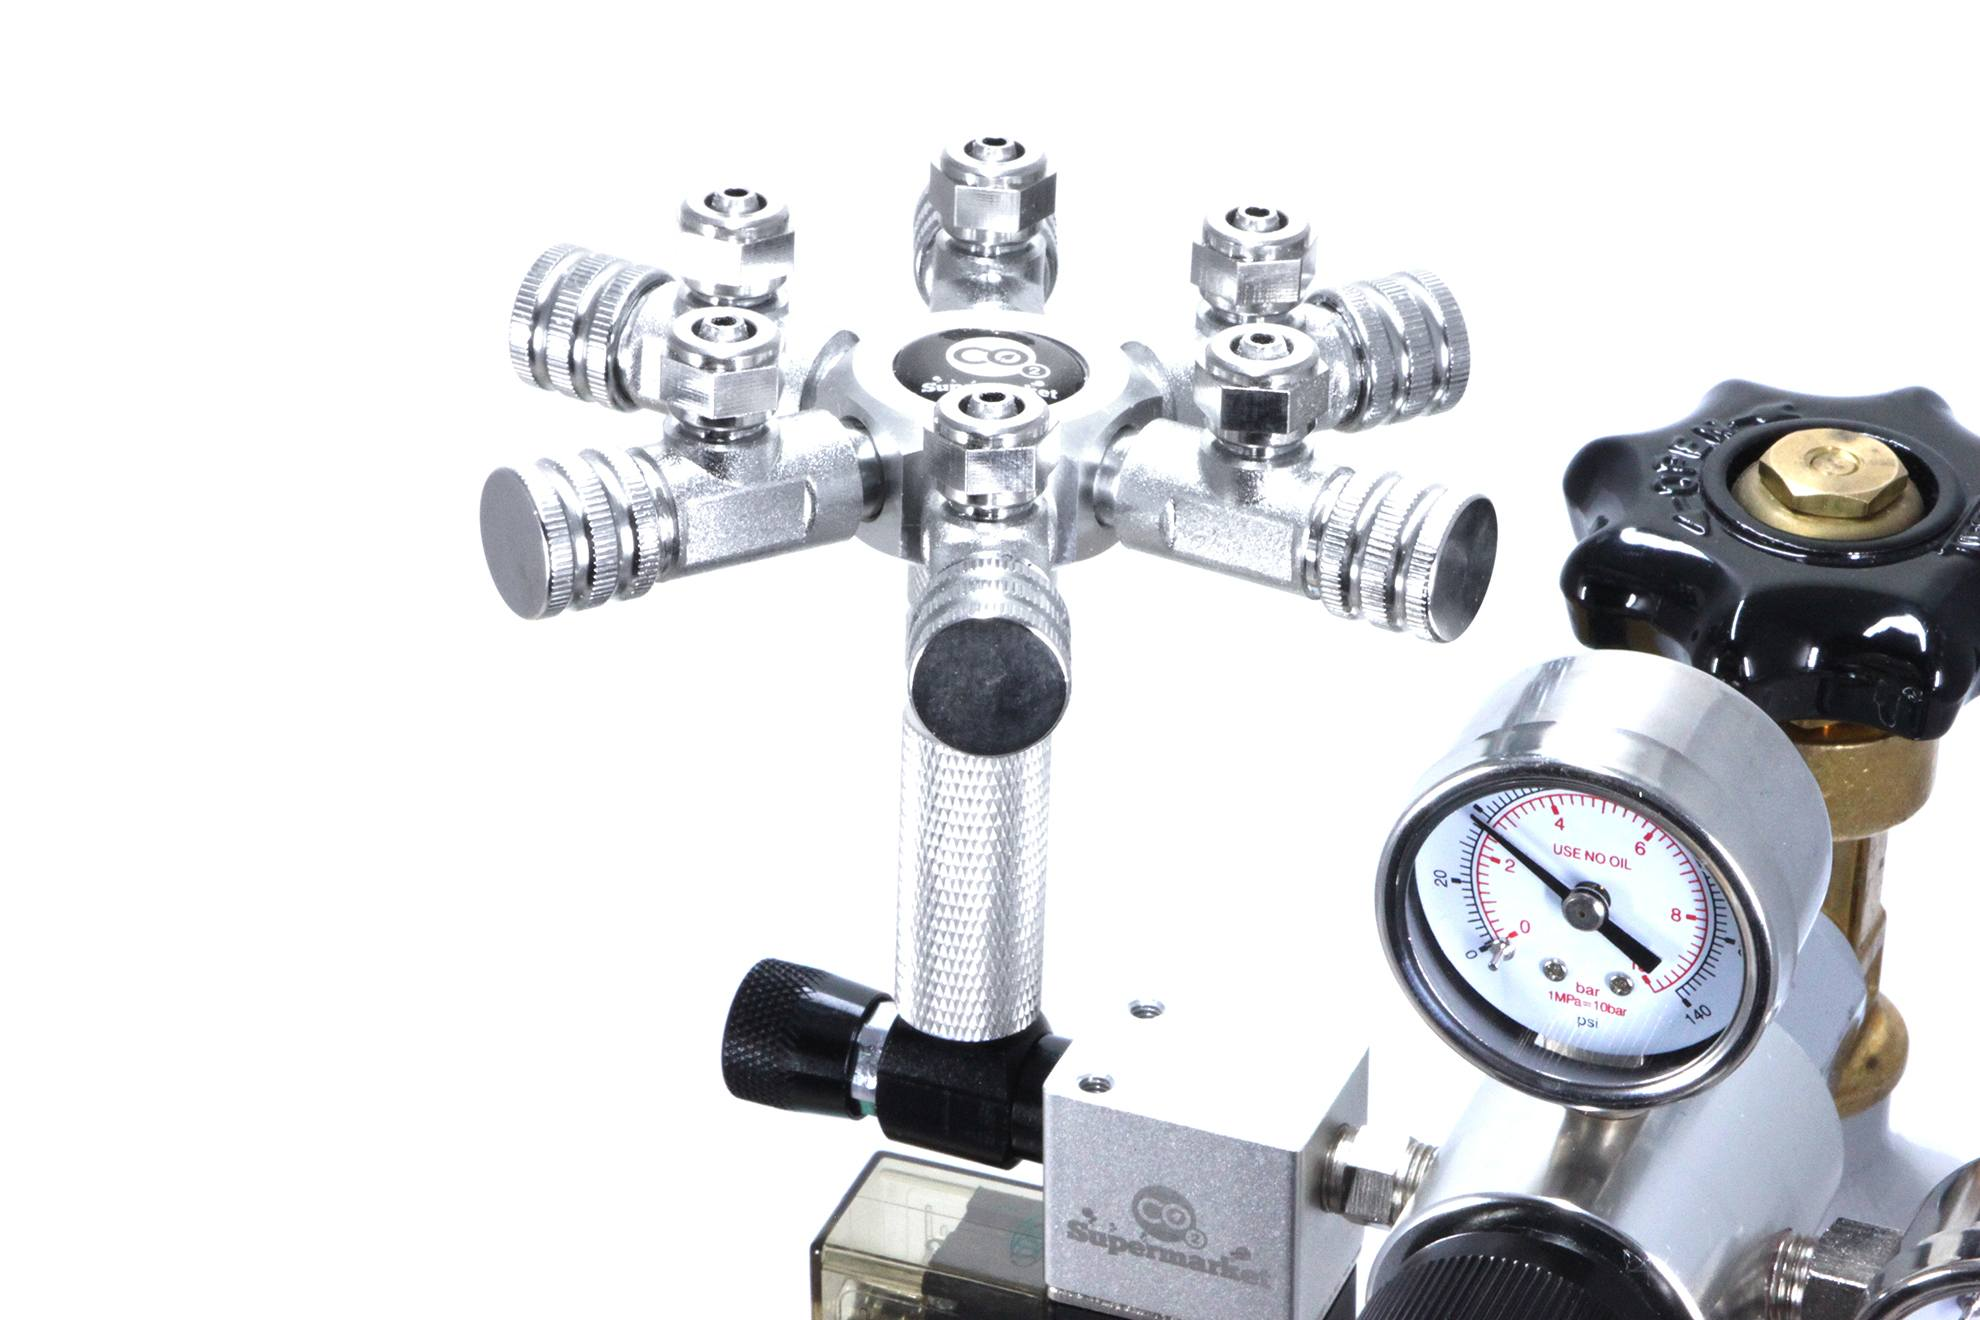 Aquarium 6 Way Co2 Splitter For Solenoid Or Regulator